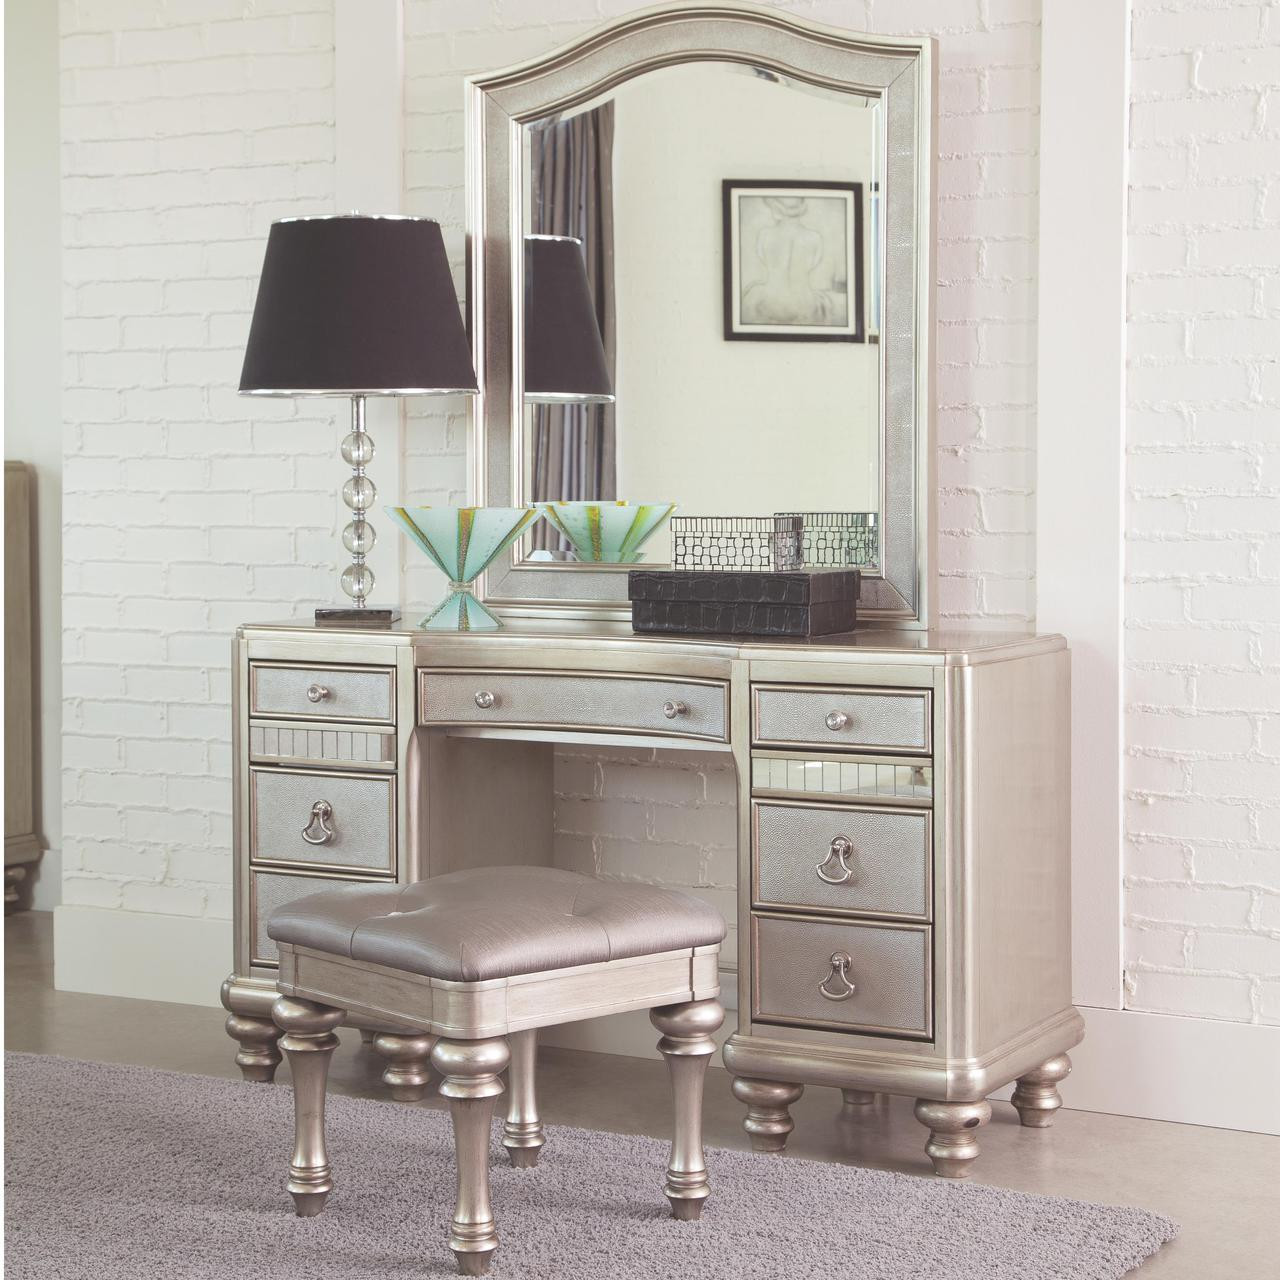 Lex metallic platinum dressing makeup table for Coiffeuse meuble